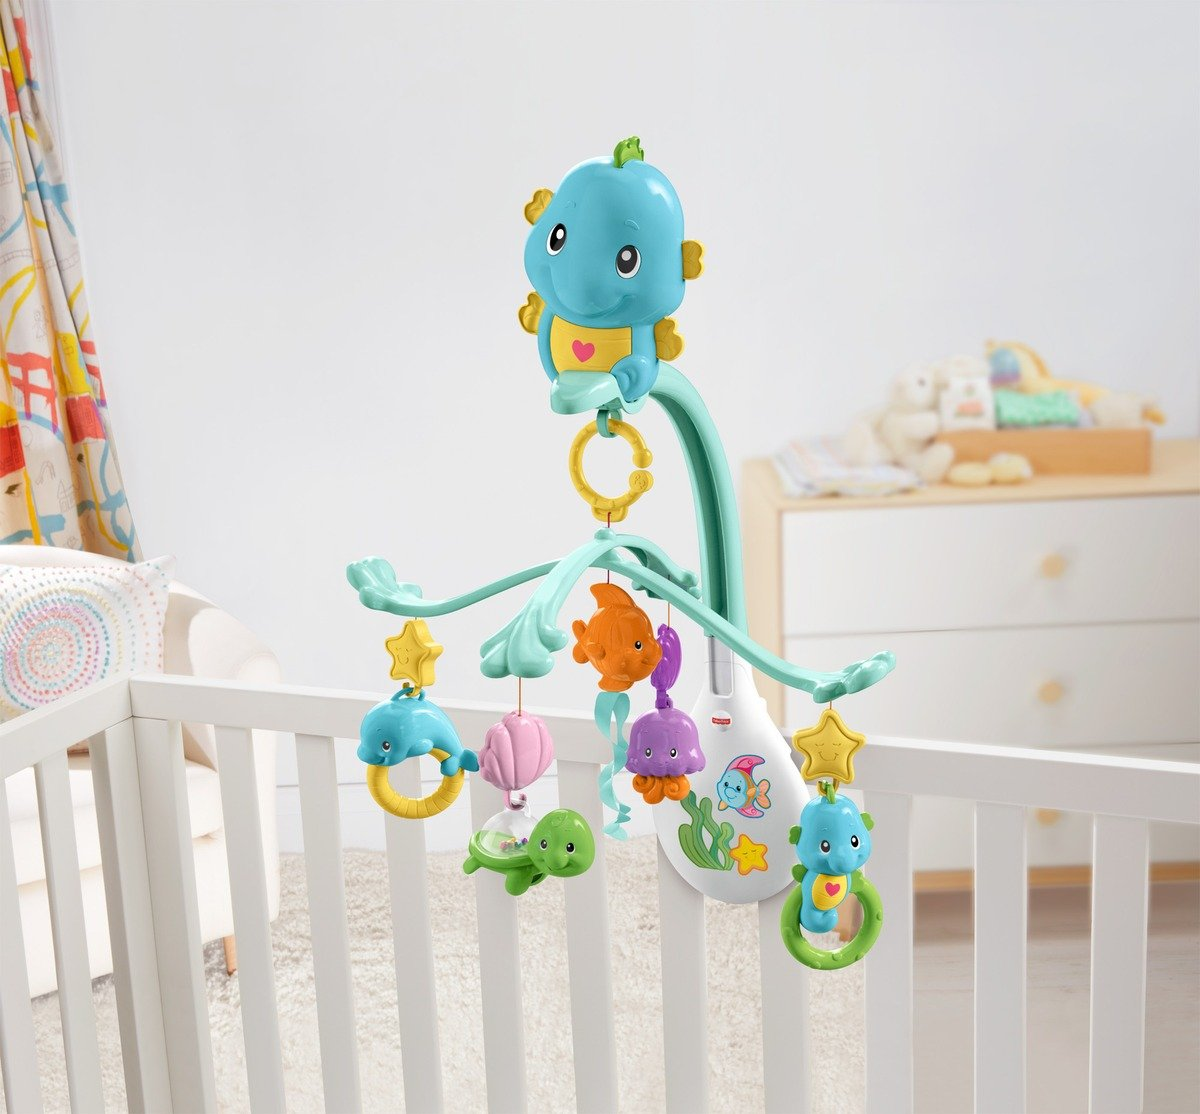 3-in-1 Soothe & Play Seahorse Mobile